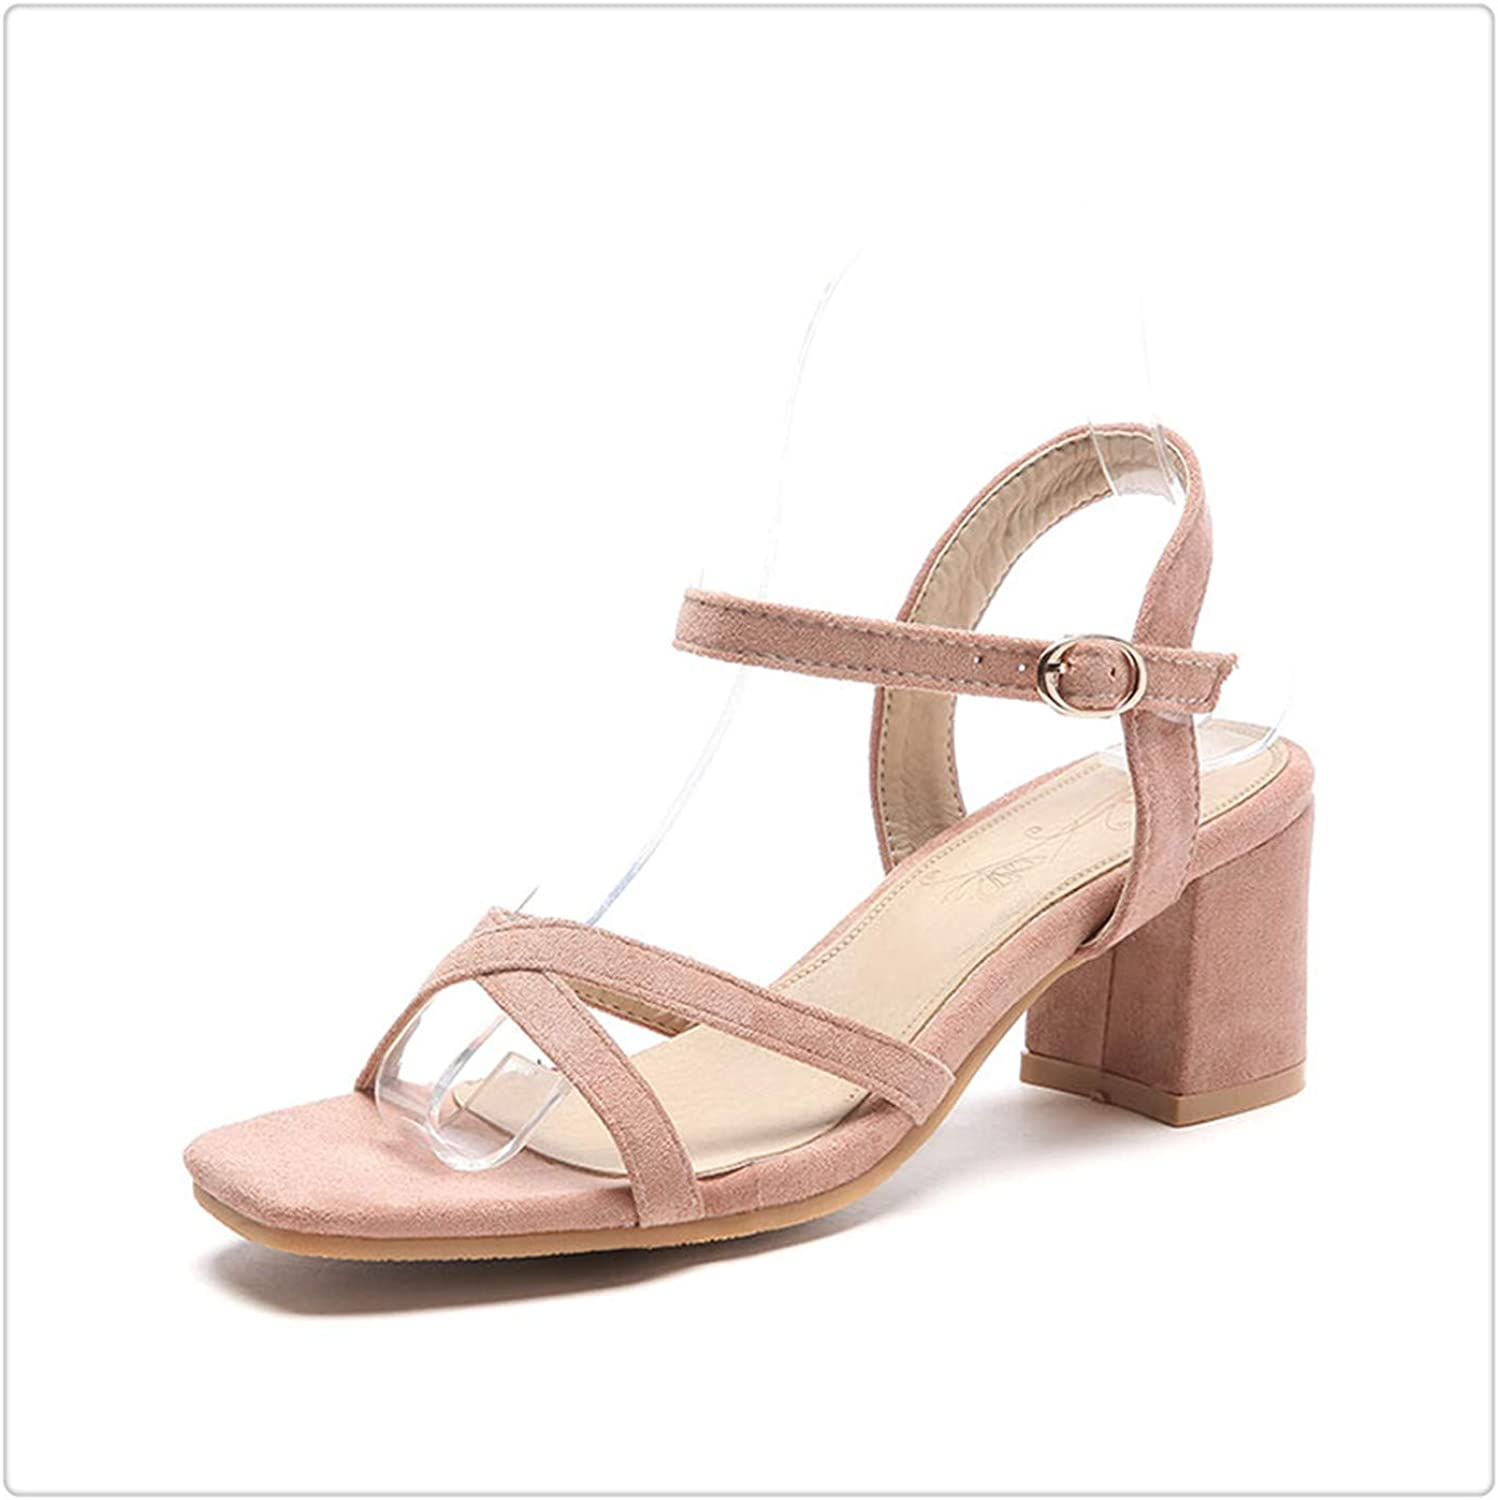 Yyixianma Plus Size Concise Ankle-Strap shoes Women Sandals Fashion Square High Heels OL